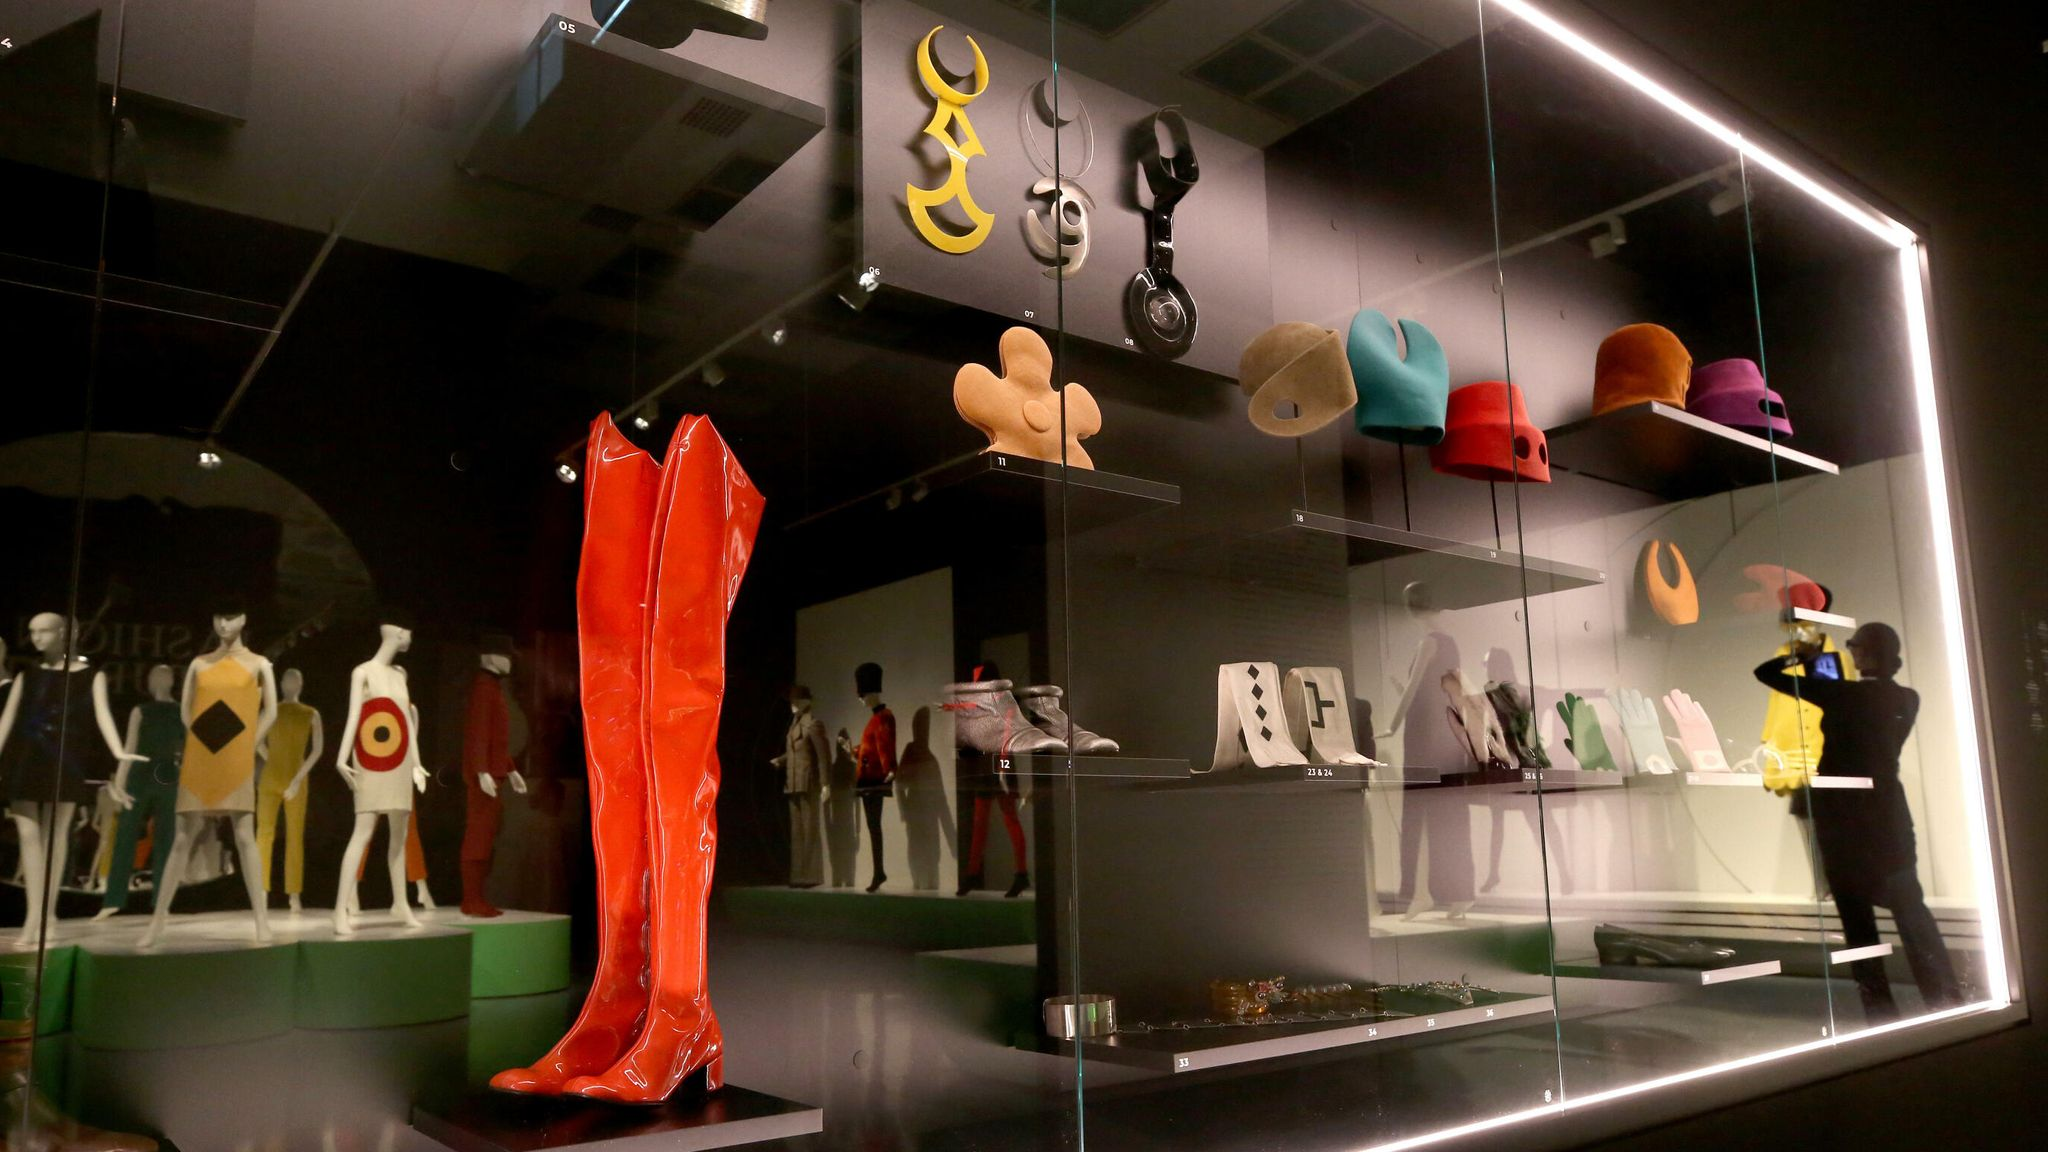 """Duesseldorf, Germany. 18th Sep, 2019. Pierre Cardin's accessories are on display in a showcase at the exhibition """"Pierre Cardin. Fashion Futurist"""". From 19.09.2019 to 05.02.2020 more than 80 pieces of clothing and accessories as well as photos and film material will be shown in the Kunstpalast. The focus is on the 1960s and 1970s with their avant-garde designs for women and men. Credit: Roland Weihrauch/dpa/Alamy Live News - Image ID: WXW9EC (RM)"""